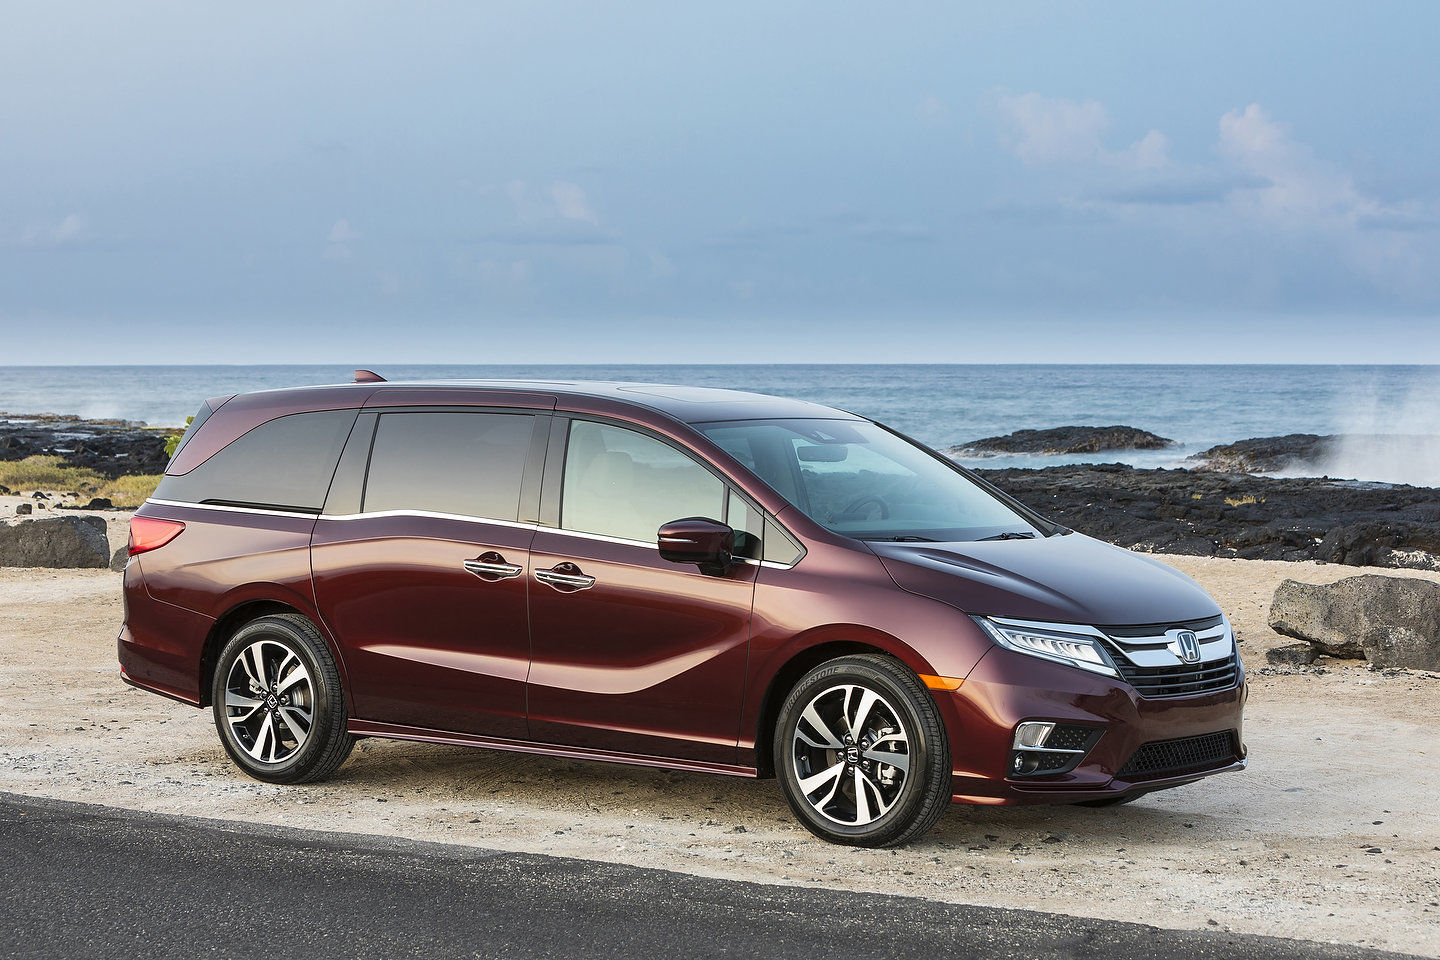 2019 Honda Odyssey: The Perfect New Minivan for Your Family